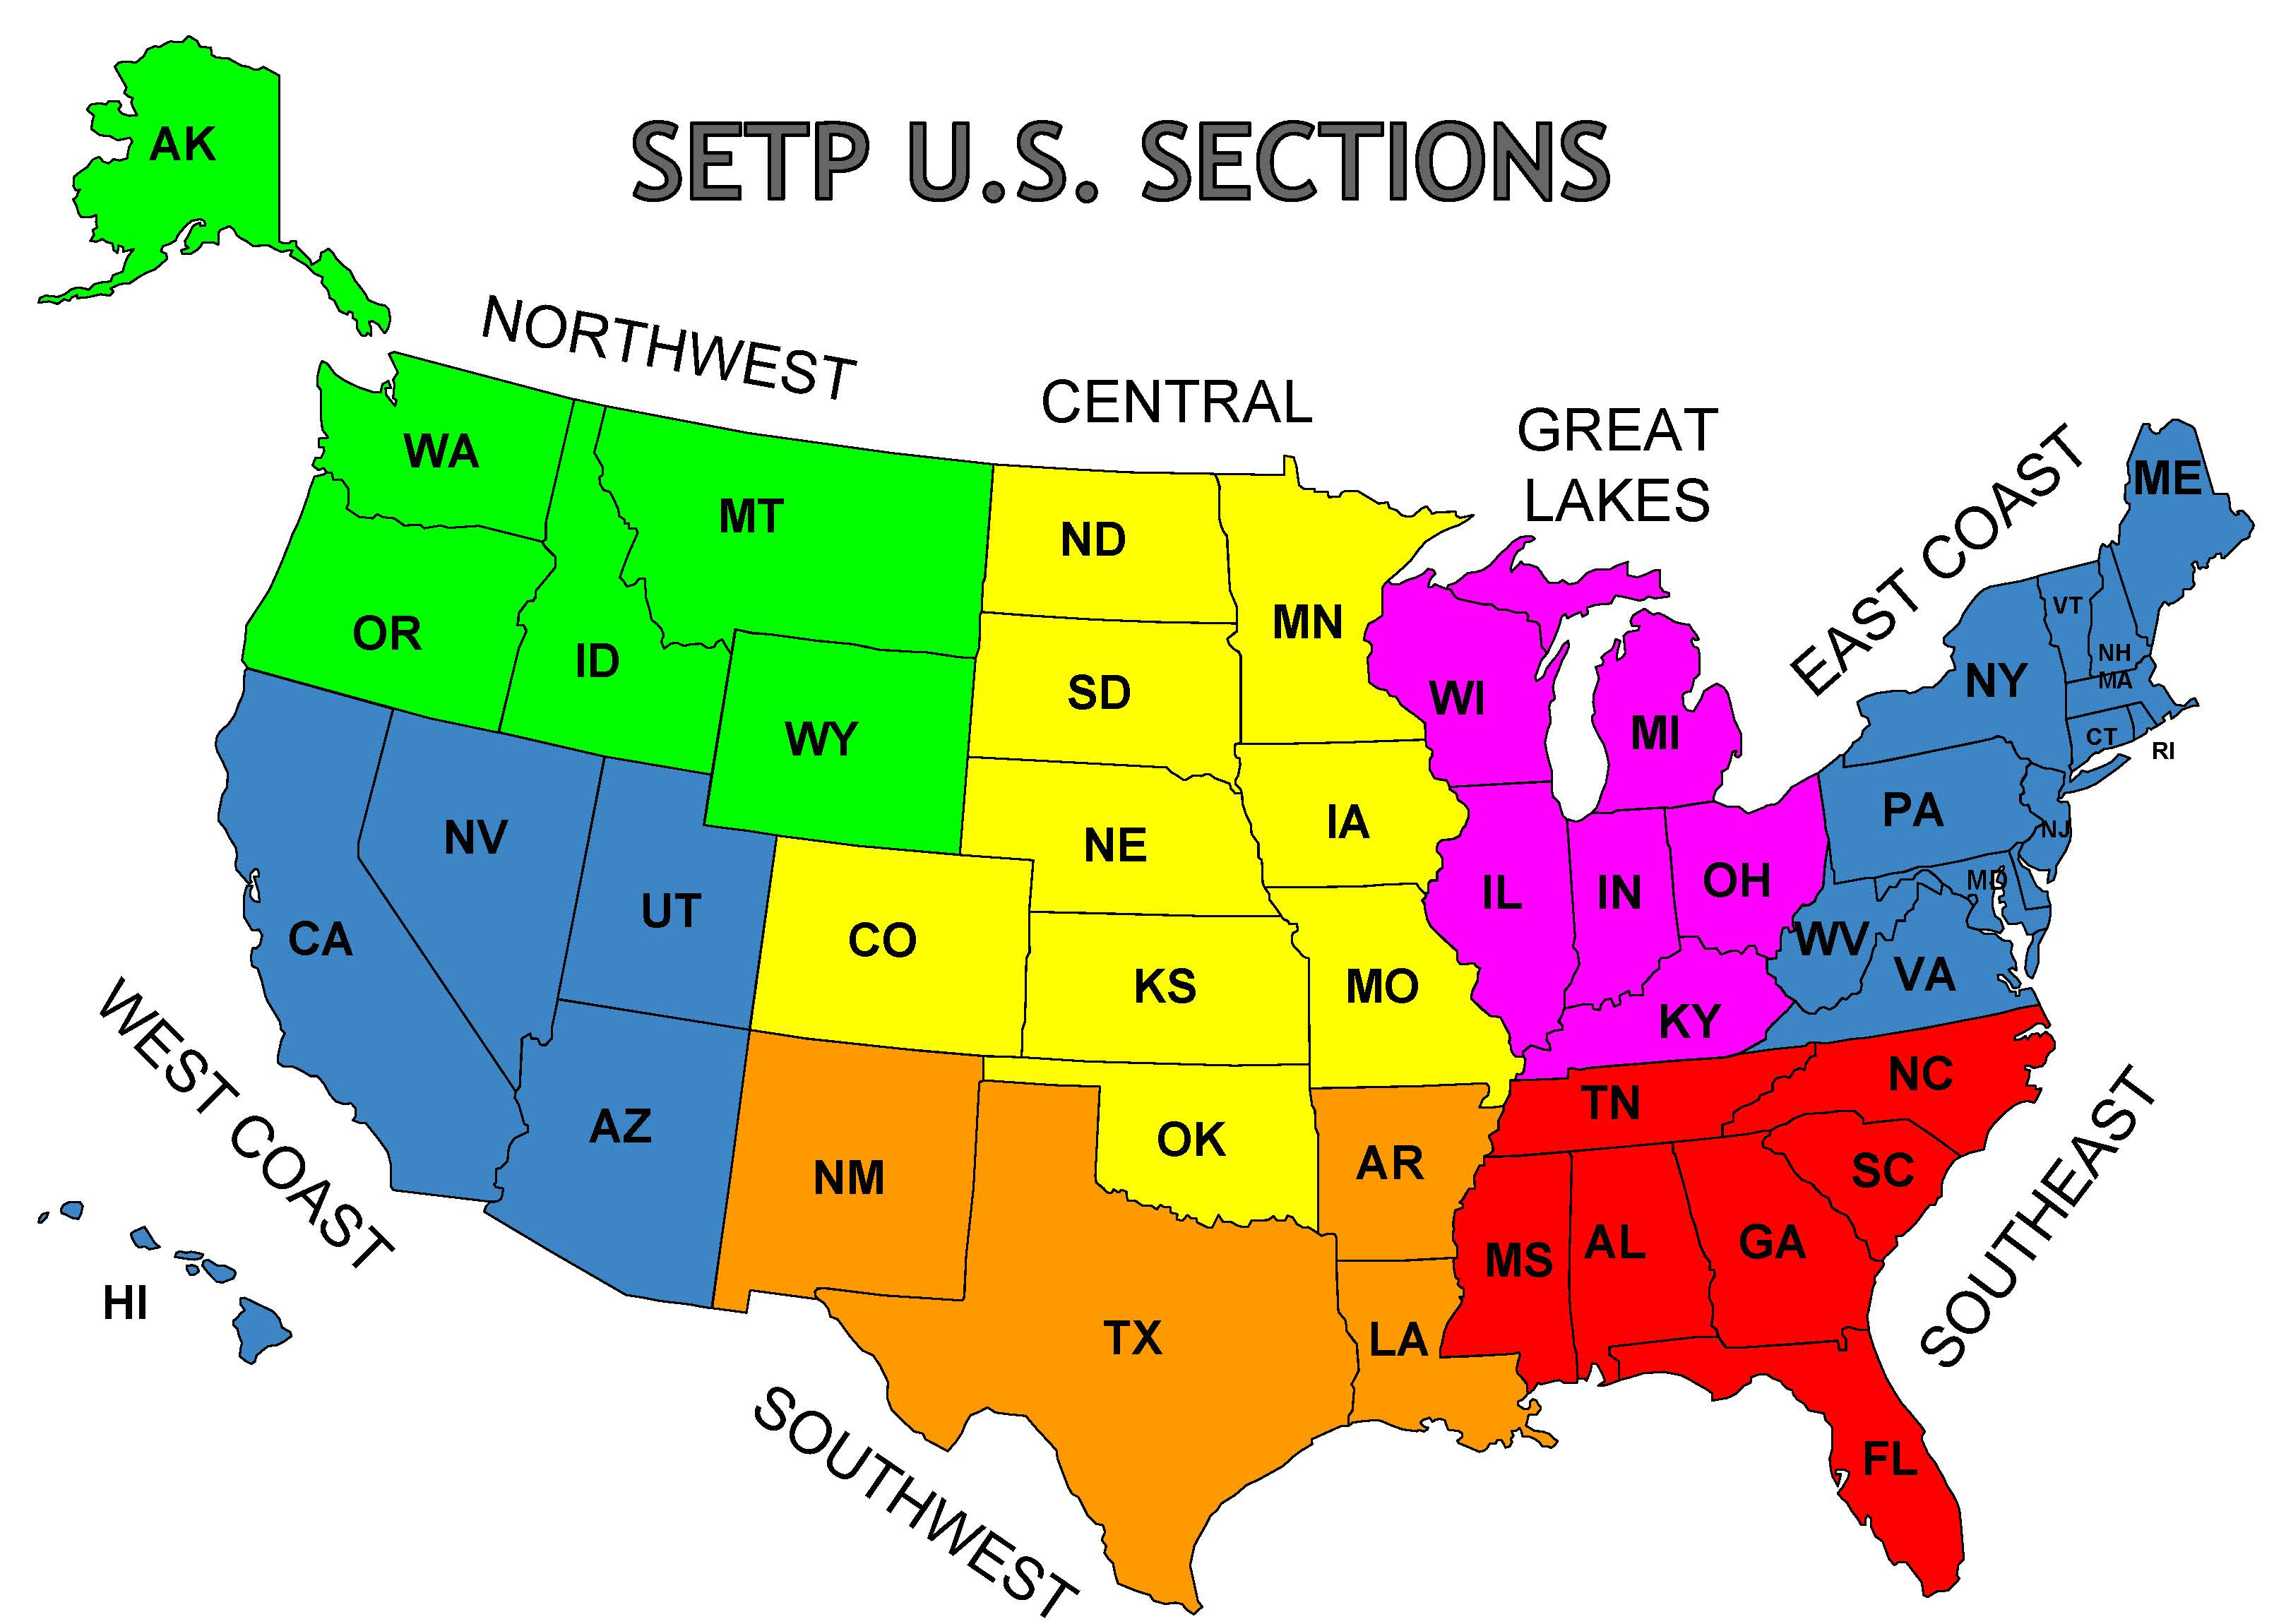 US Maps USA State Maps Shell Highway Map Southeastern Section Of - Usa states list and map